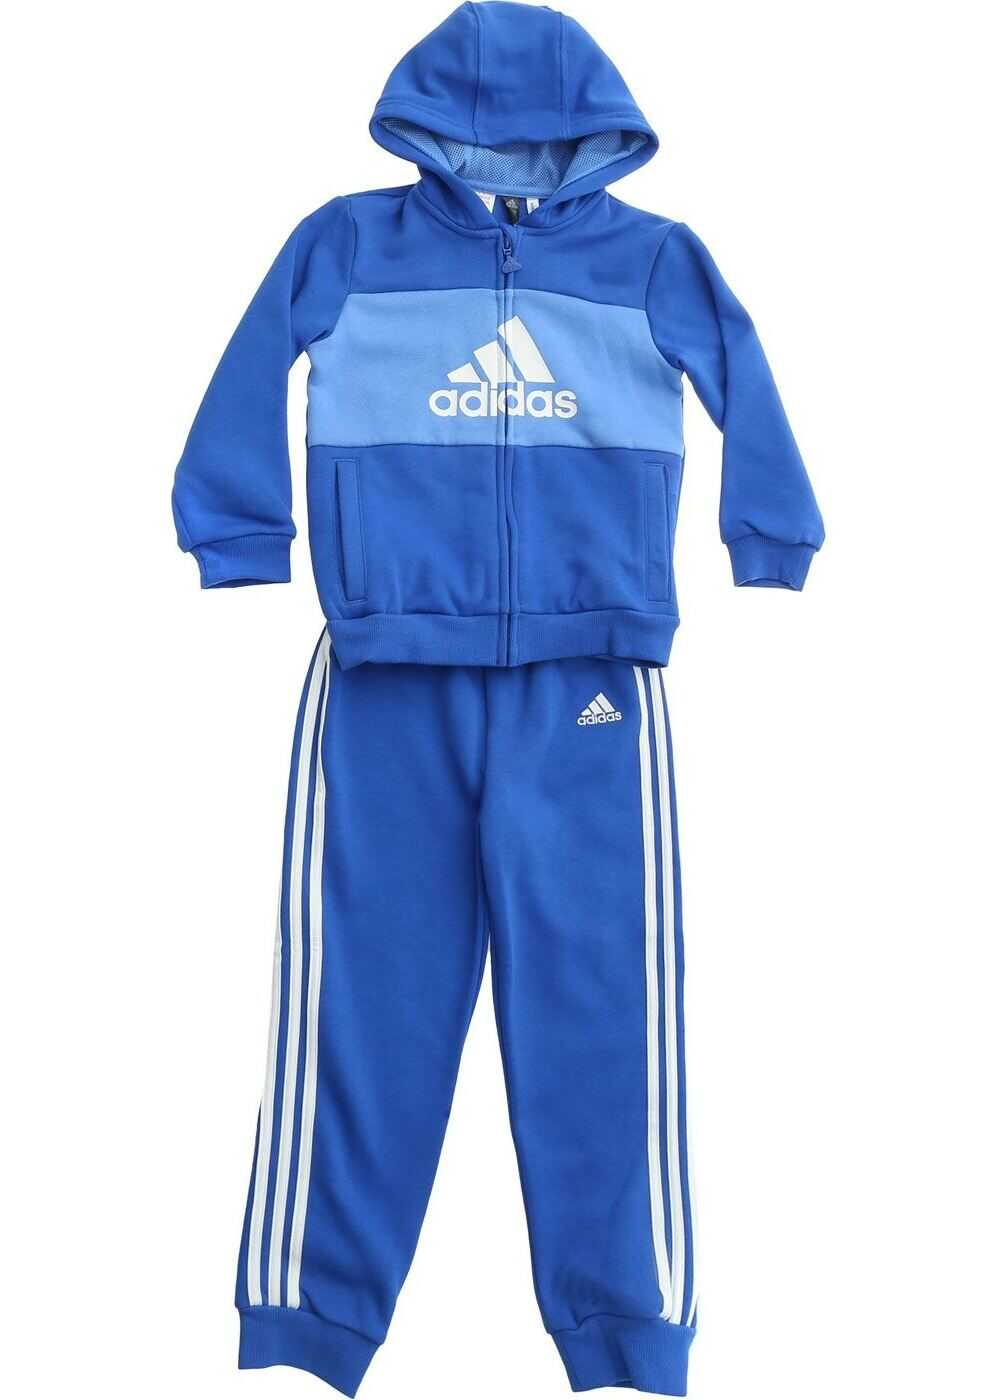 adidas Branded Tracksuit In Blue And Light Blue Blue